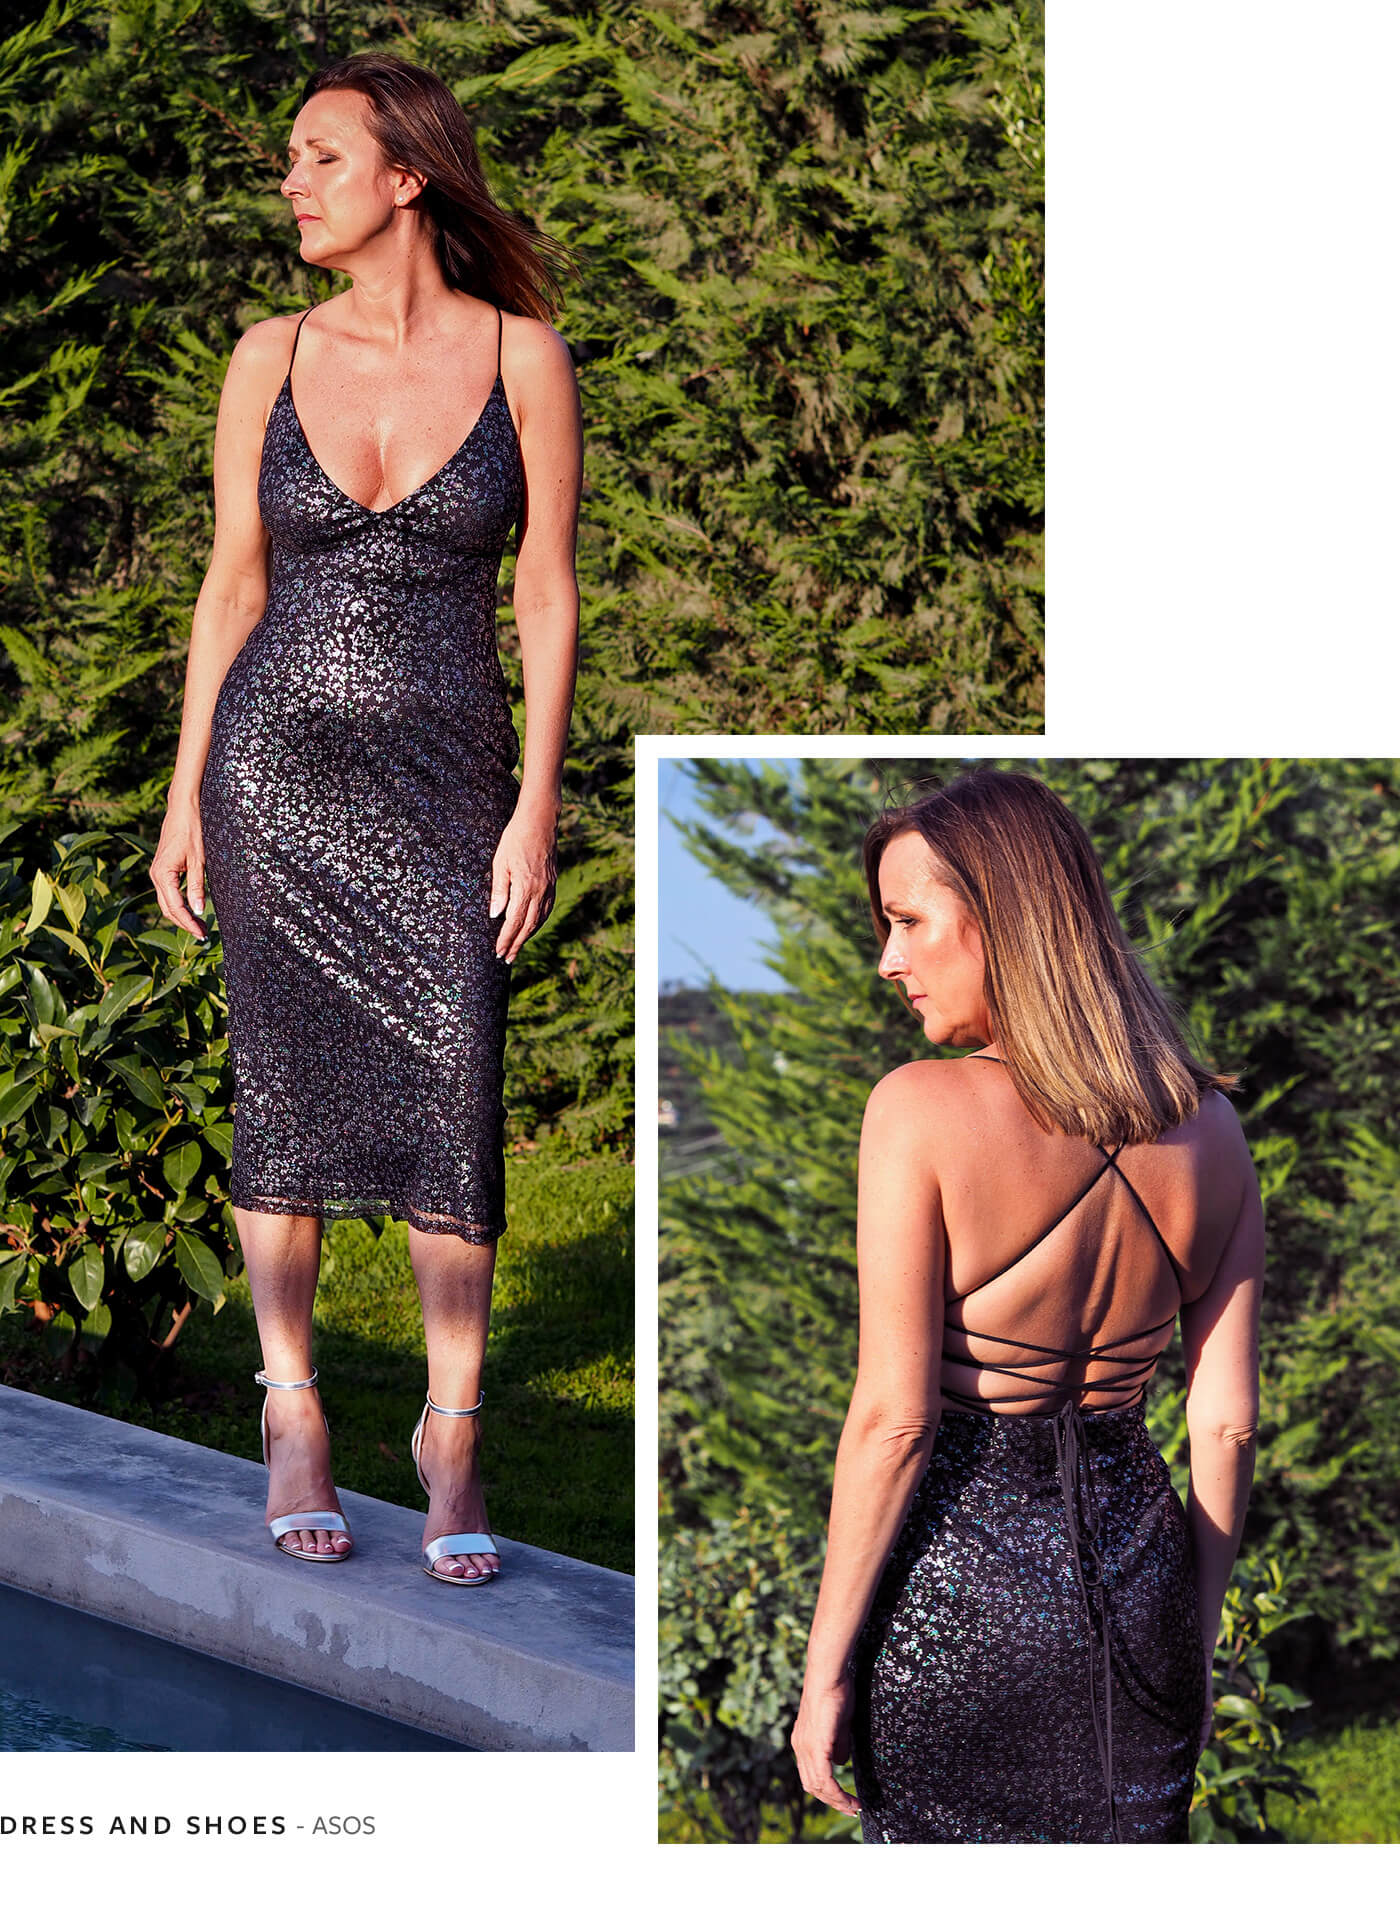 ASOS Black Shimmer Dress